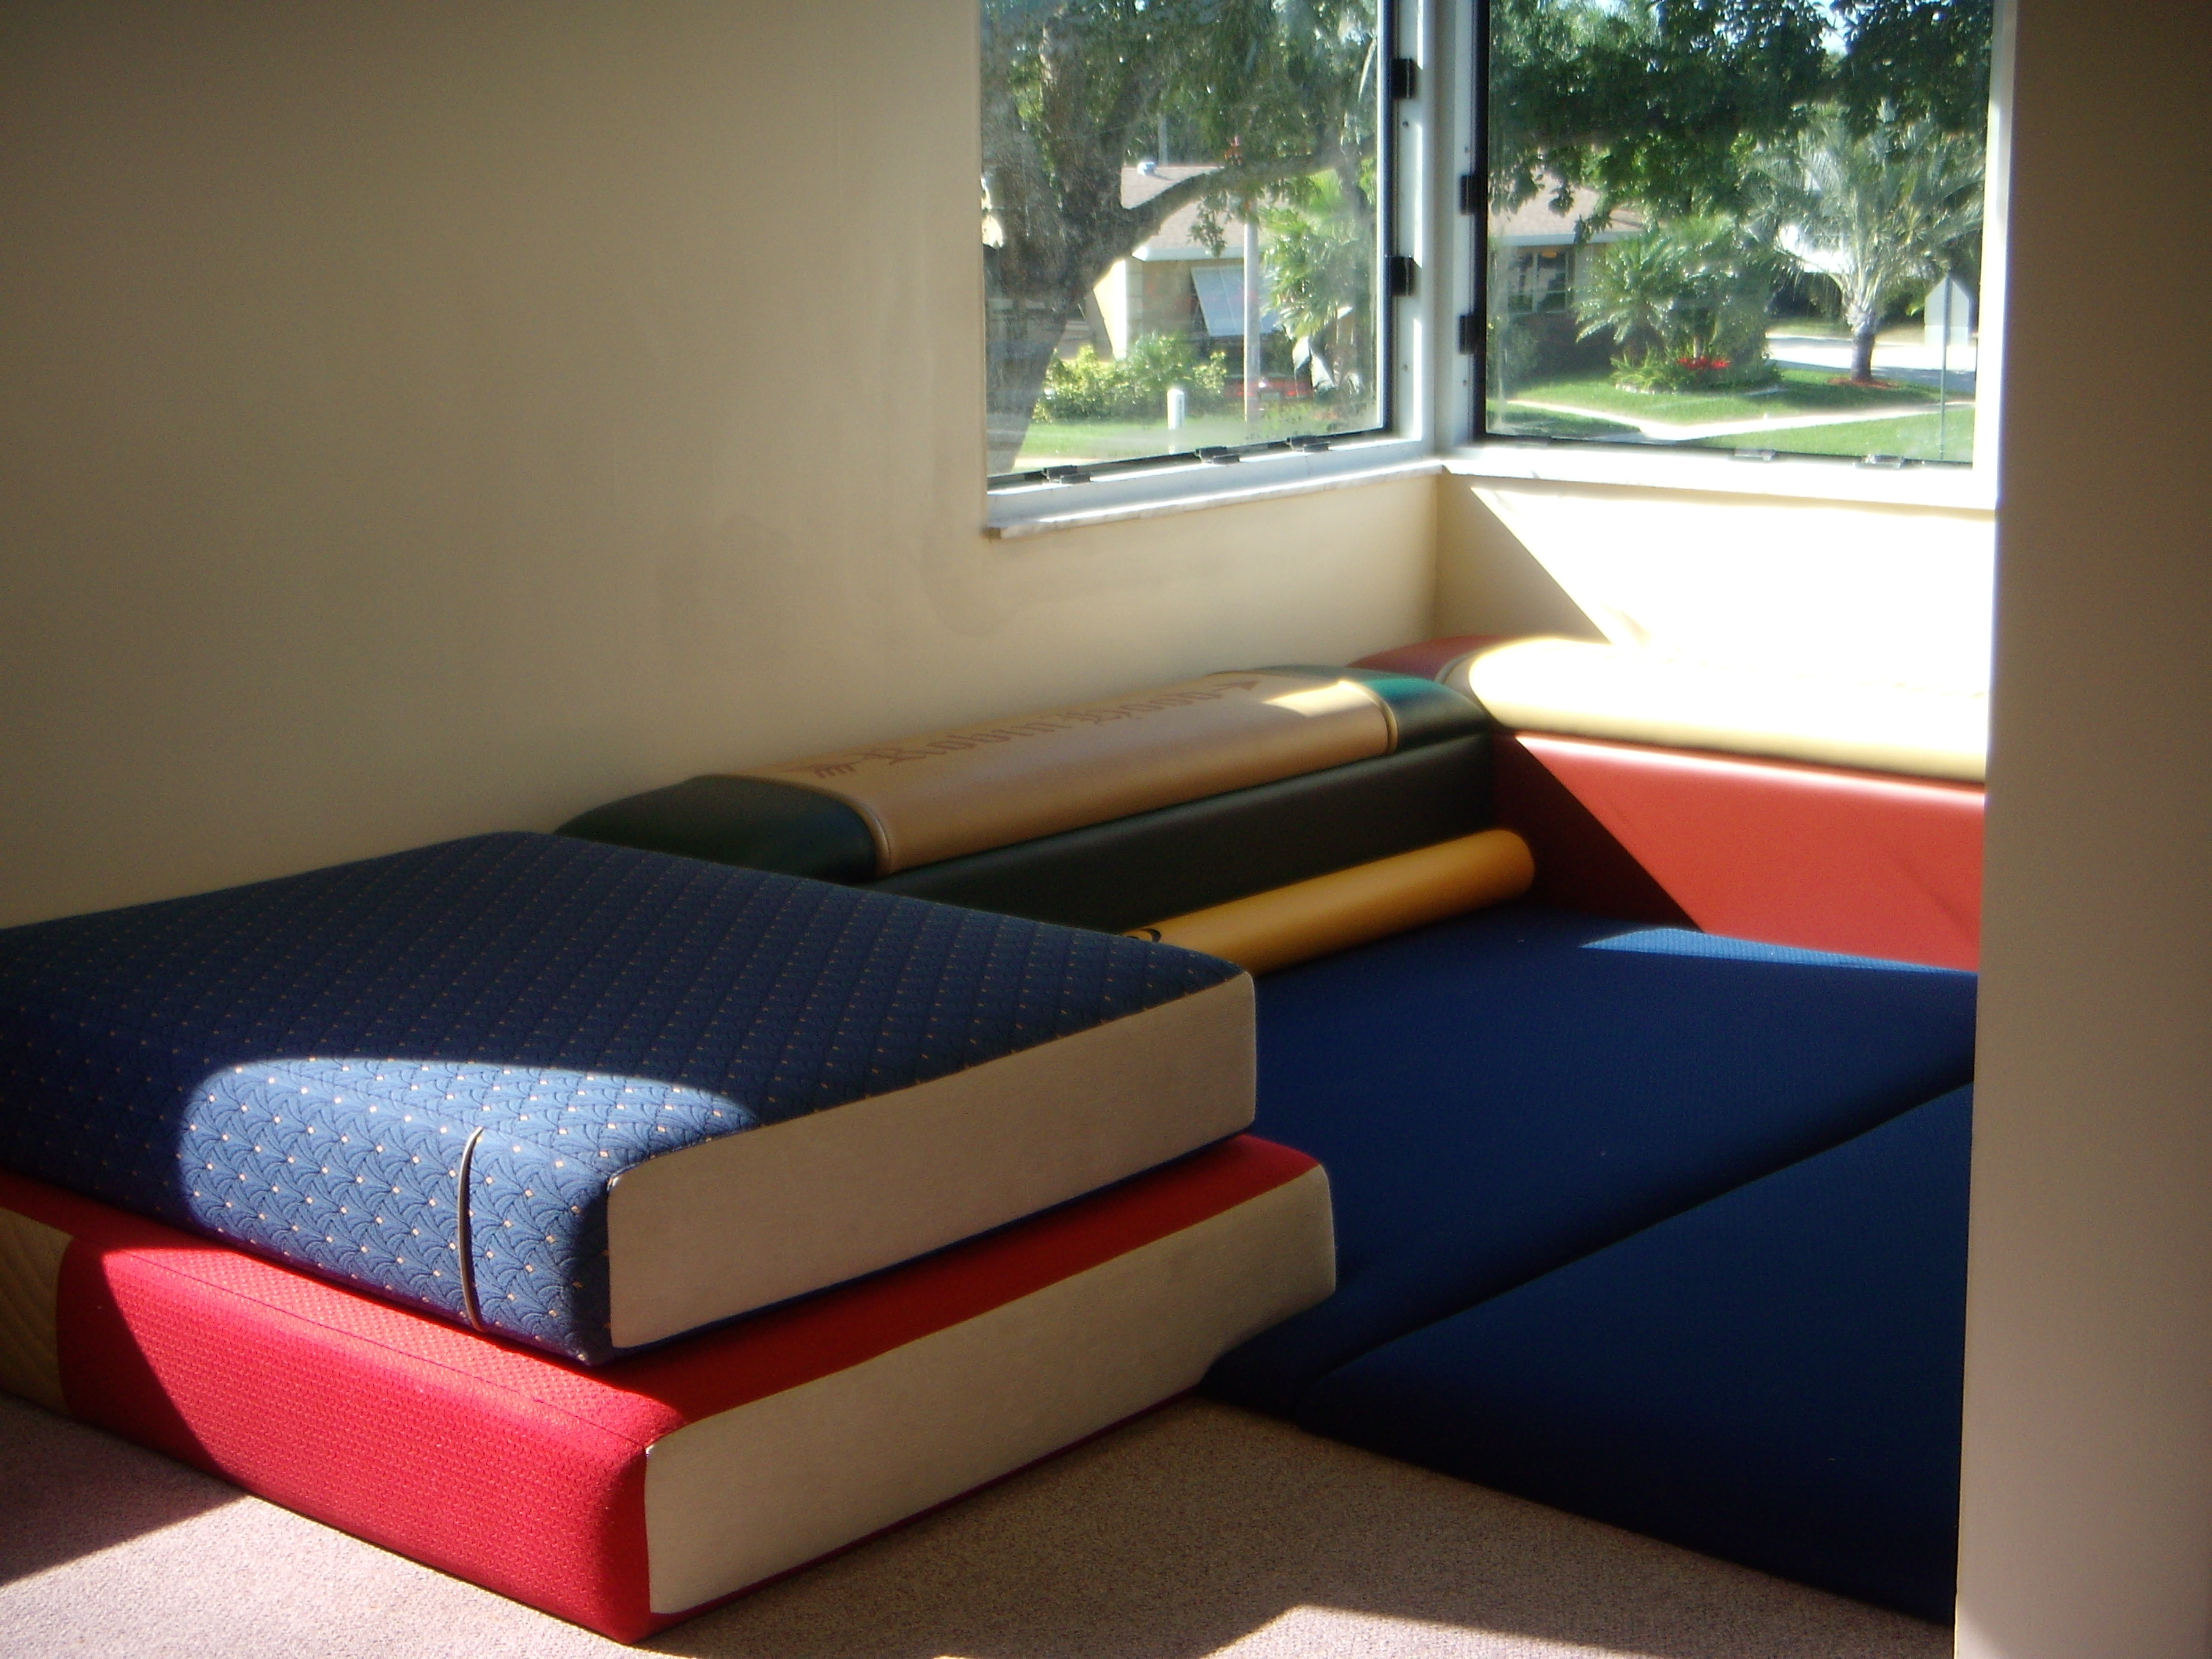 Red, blue book furniture with blue mat